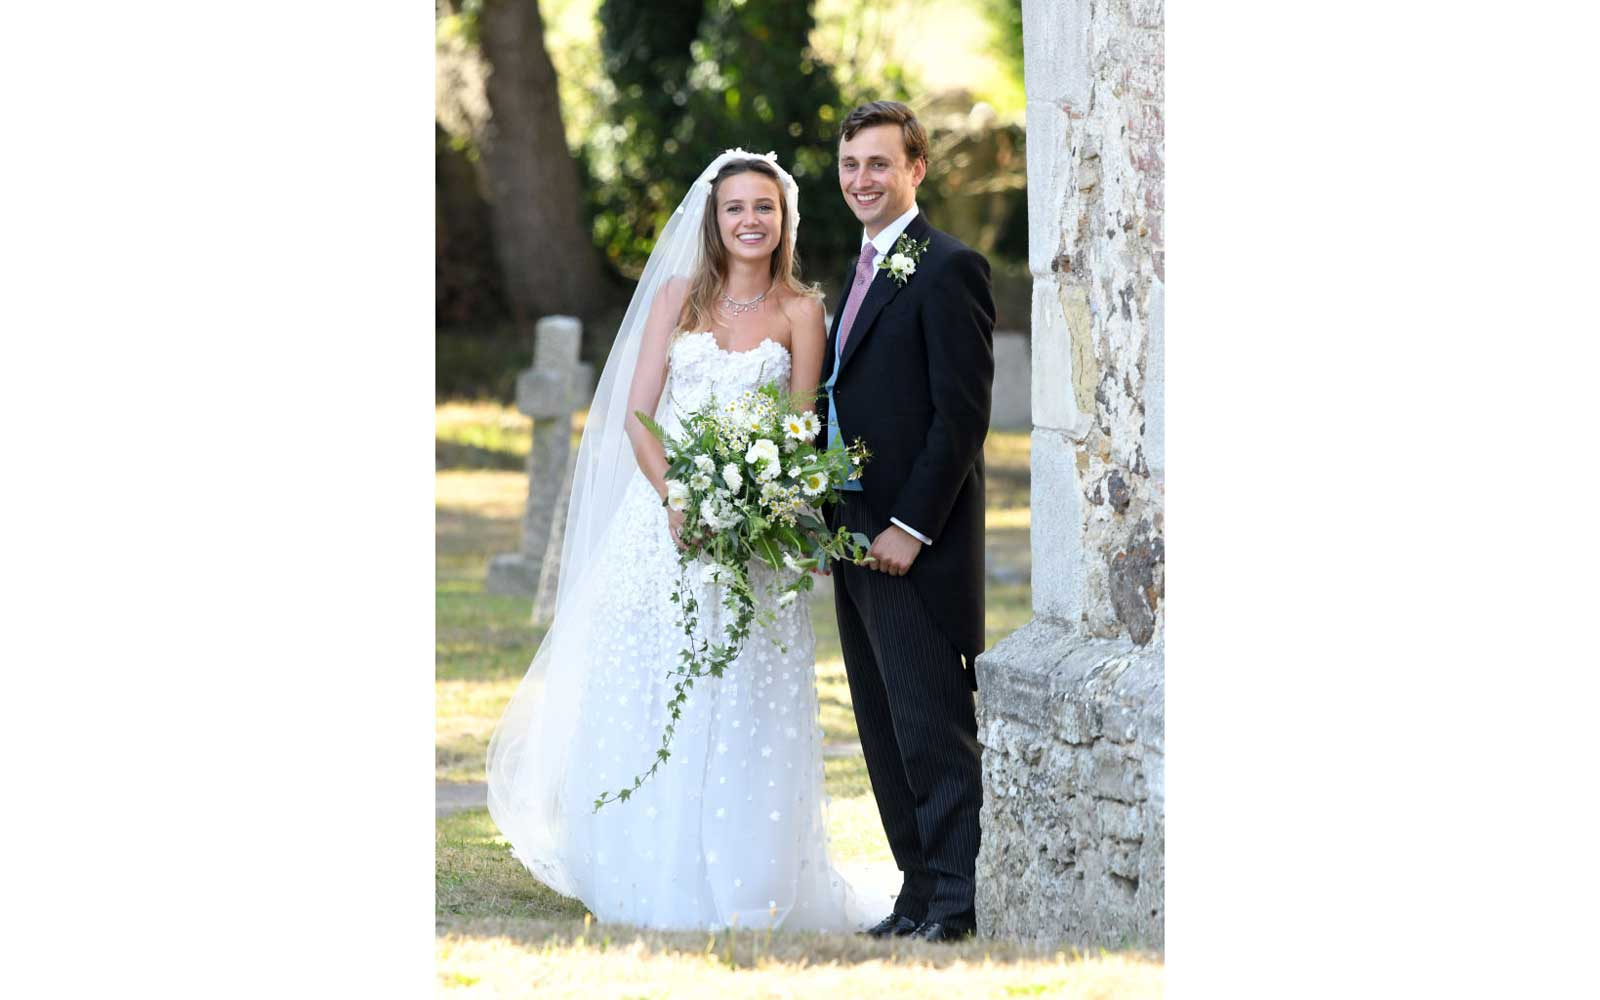 The wedding of Daisy Jenks and Charlie Van Straubenzee at Saint Mary The Virgin Church on August 4, 2018 in Frensham, United Kingdom